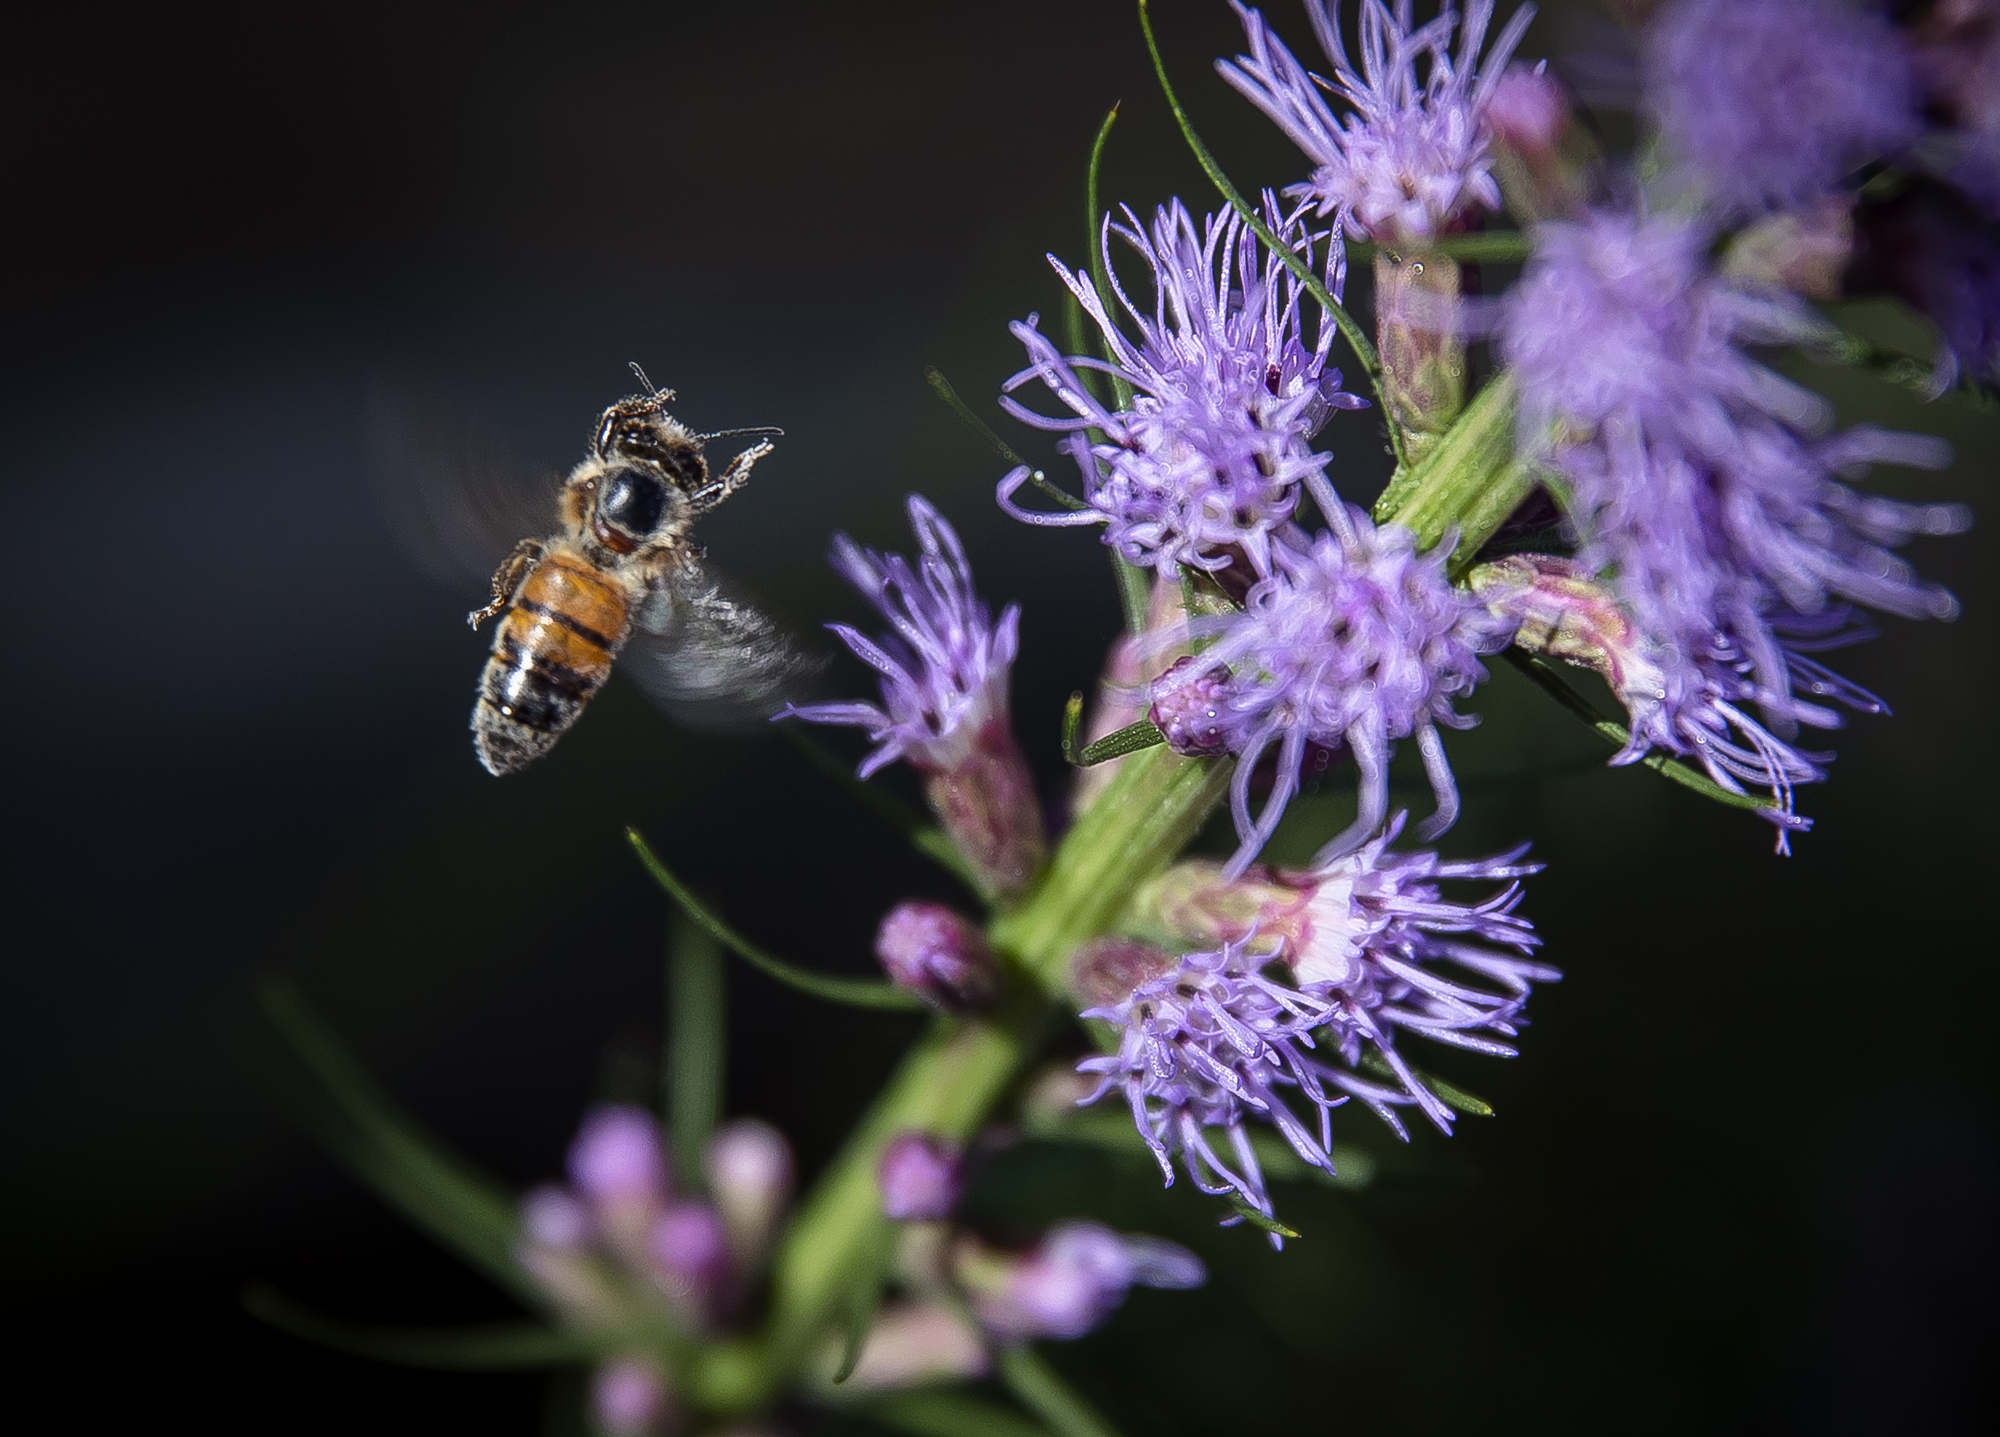 A honey bee comes in for a landing to collect pollen and nectar from the blossoms of a blazing star flower in bloom along Carpenter Street, Monday, July 16, 2018, in Springfield, Ill. [Justin L. Fowler/The State Journal-Register]